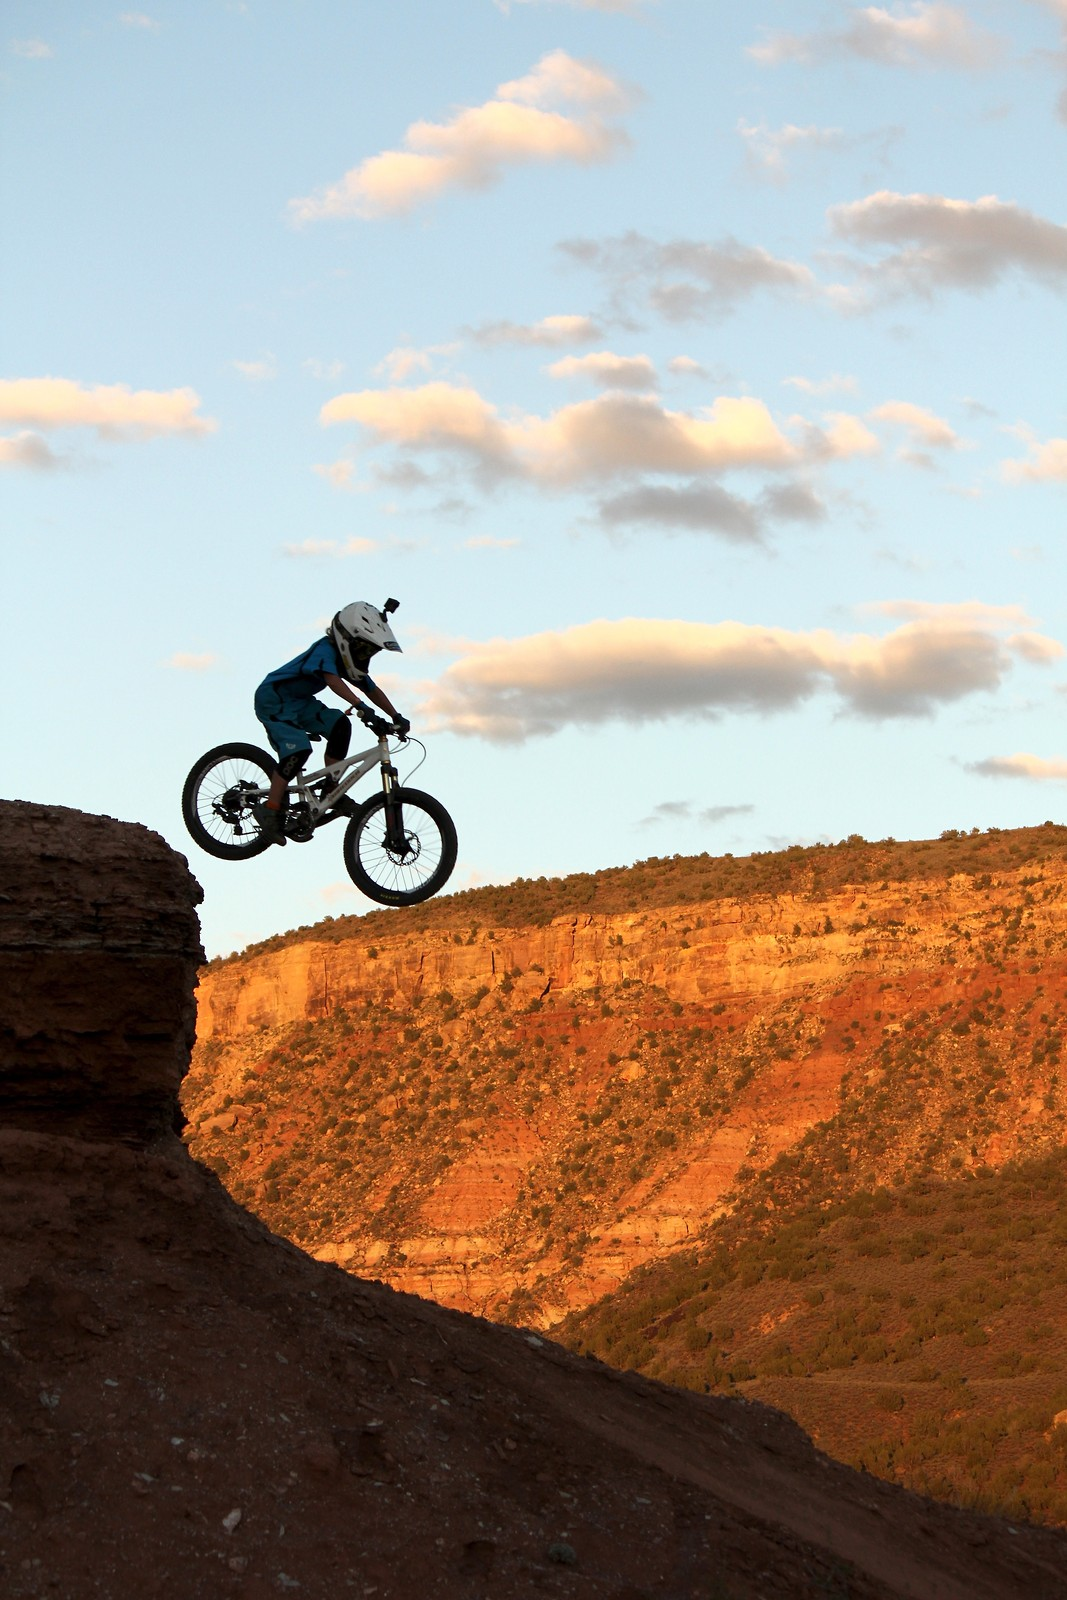 Where the trail starts - Ron_Goldstone - Mountain Biking Pictures - Vital MTB